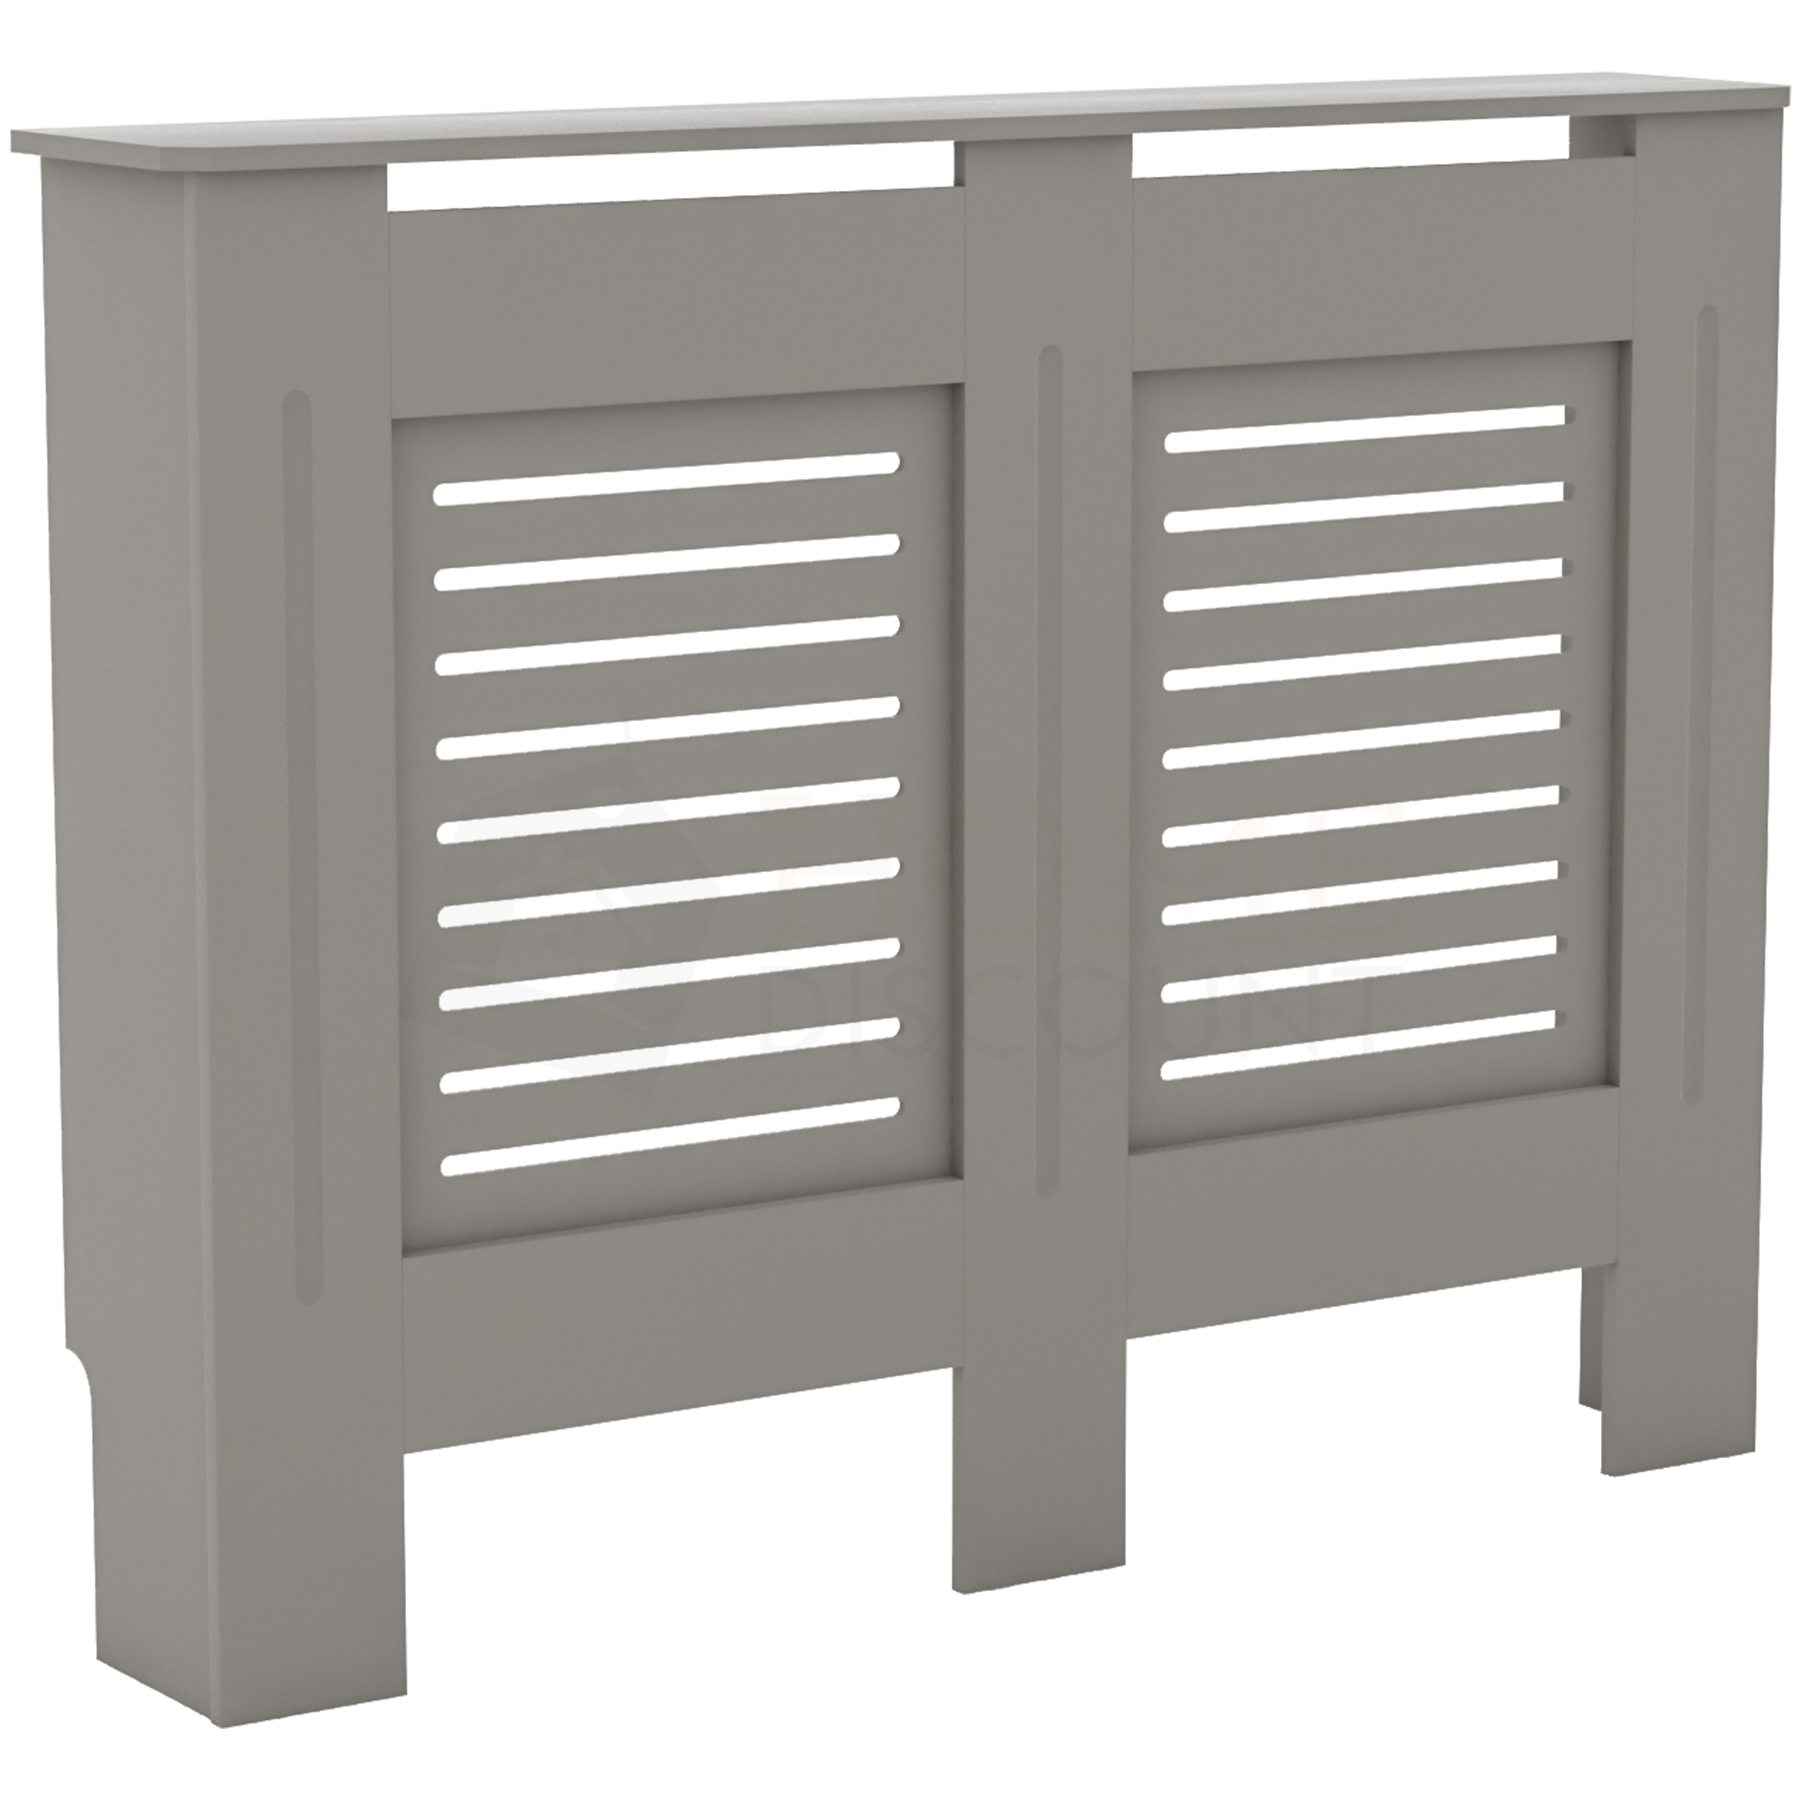 thumbnail 137 - Radiator Cover White Unfinished Modern Traditional Wood Grill Cabinet Furniture